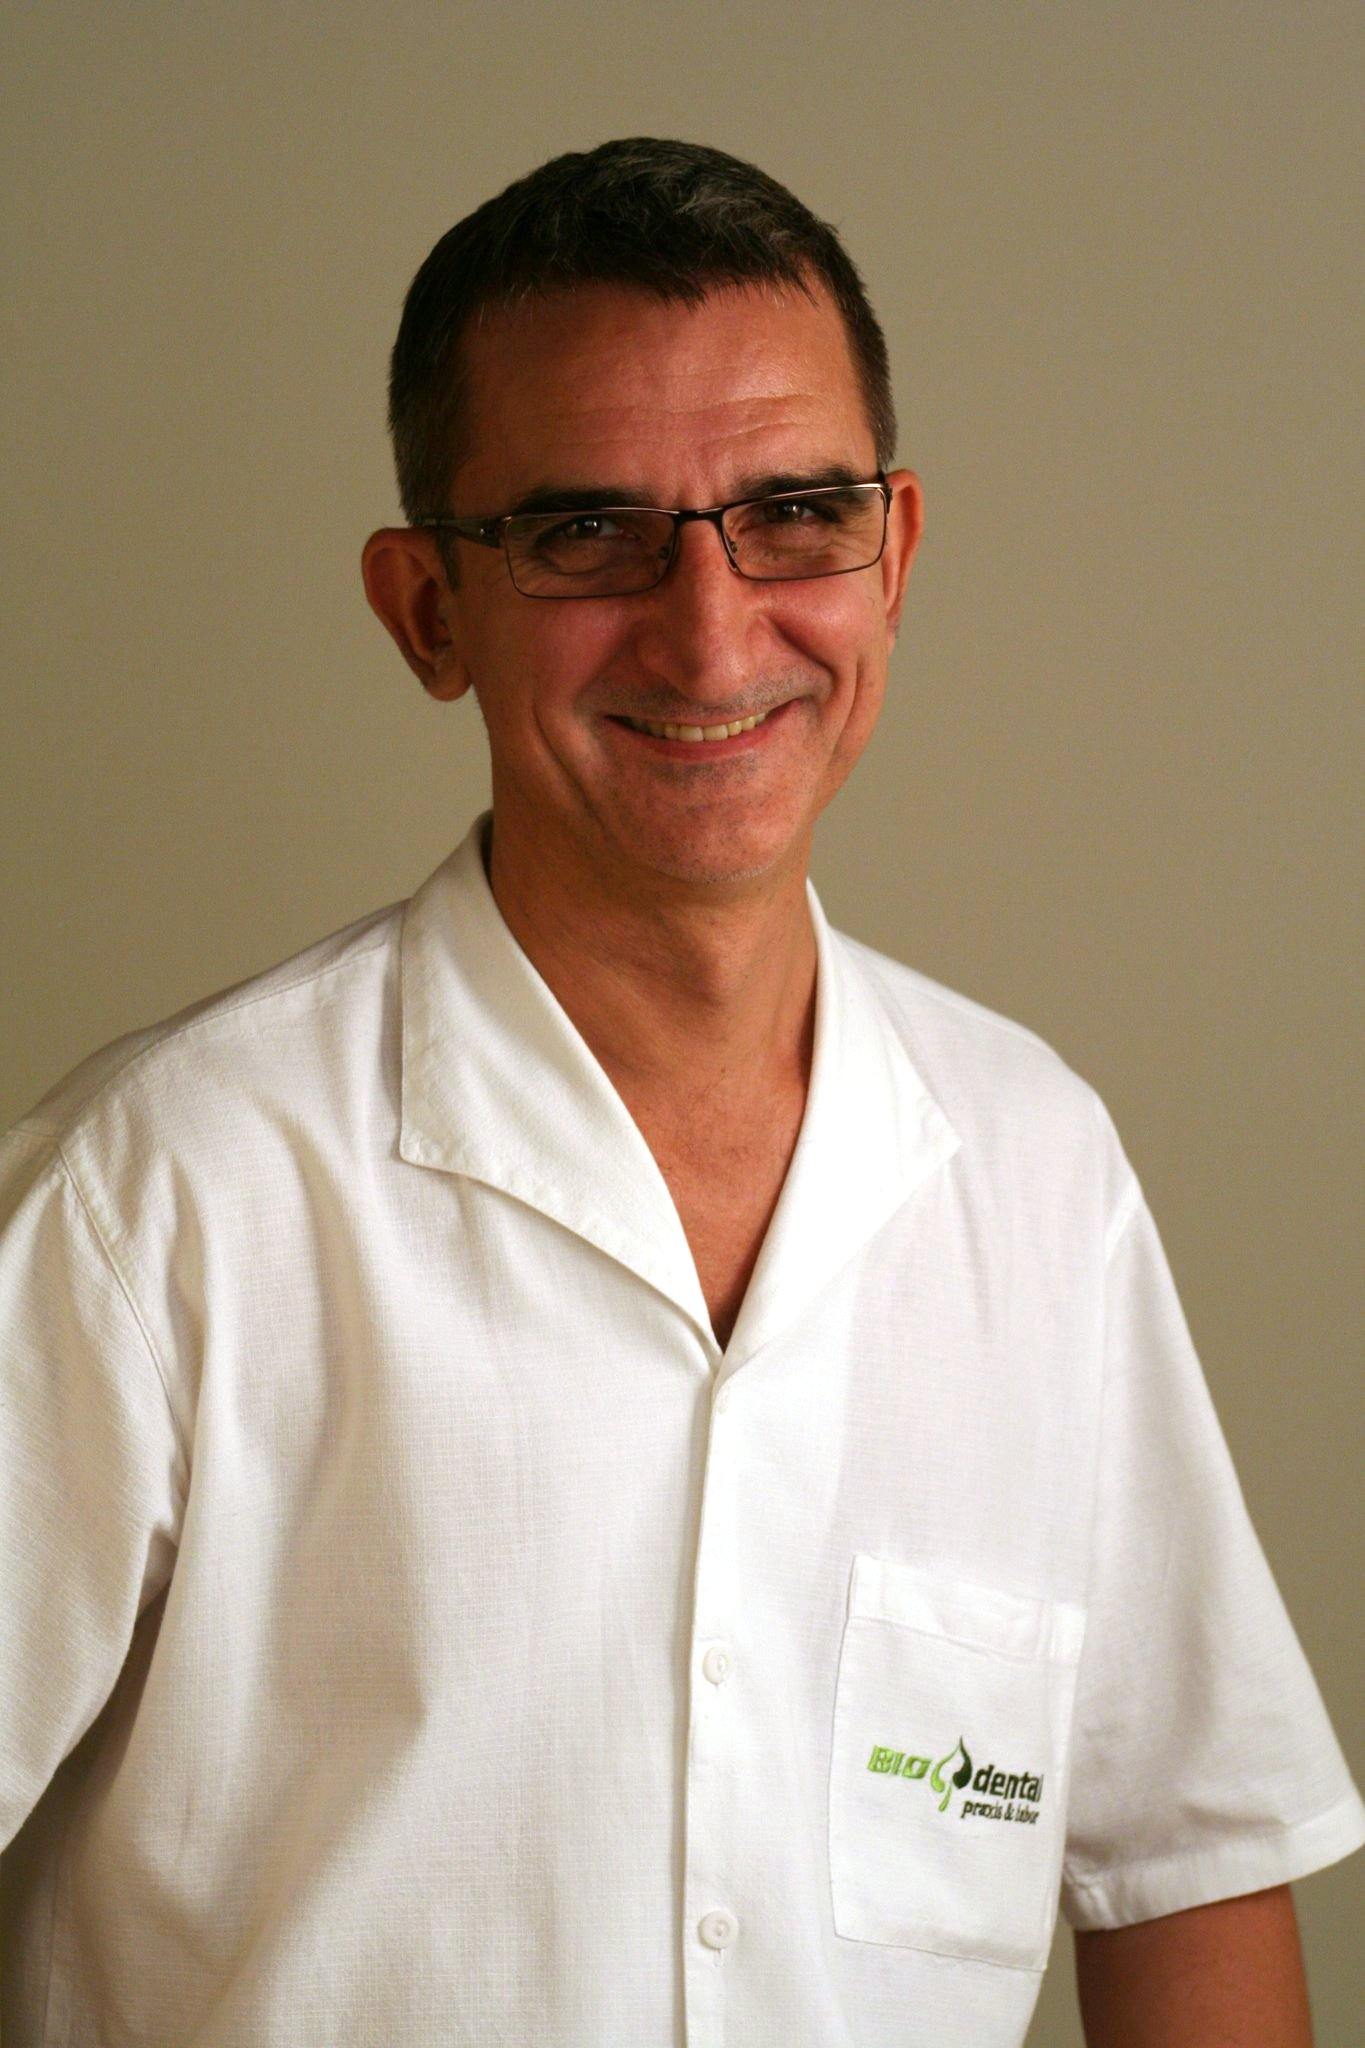 Dr Laszlo Horvath - Master of Oral Medicine in Implantology - Best Budapest Dentist. com